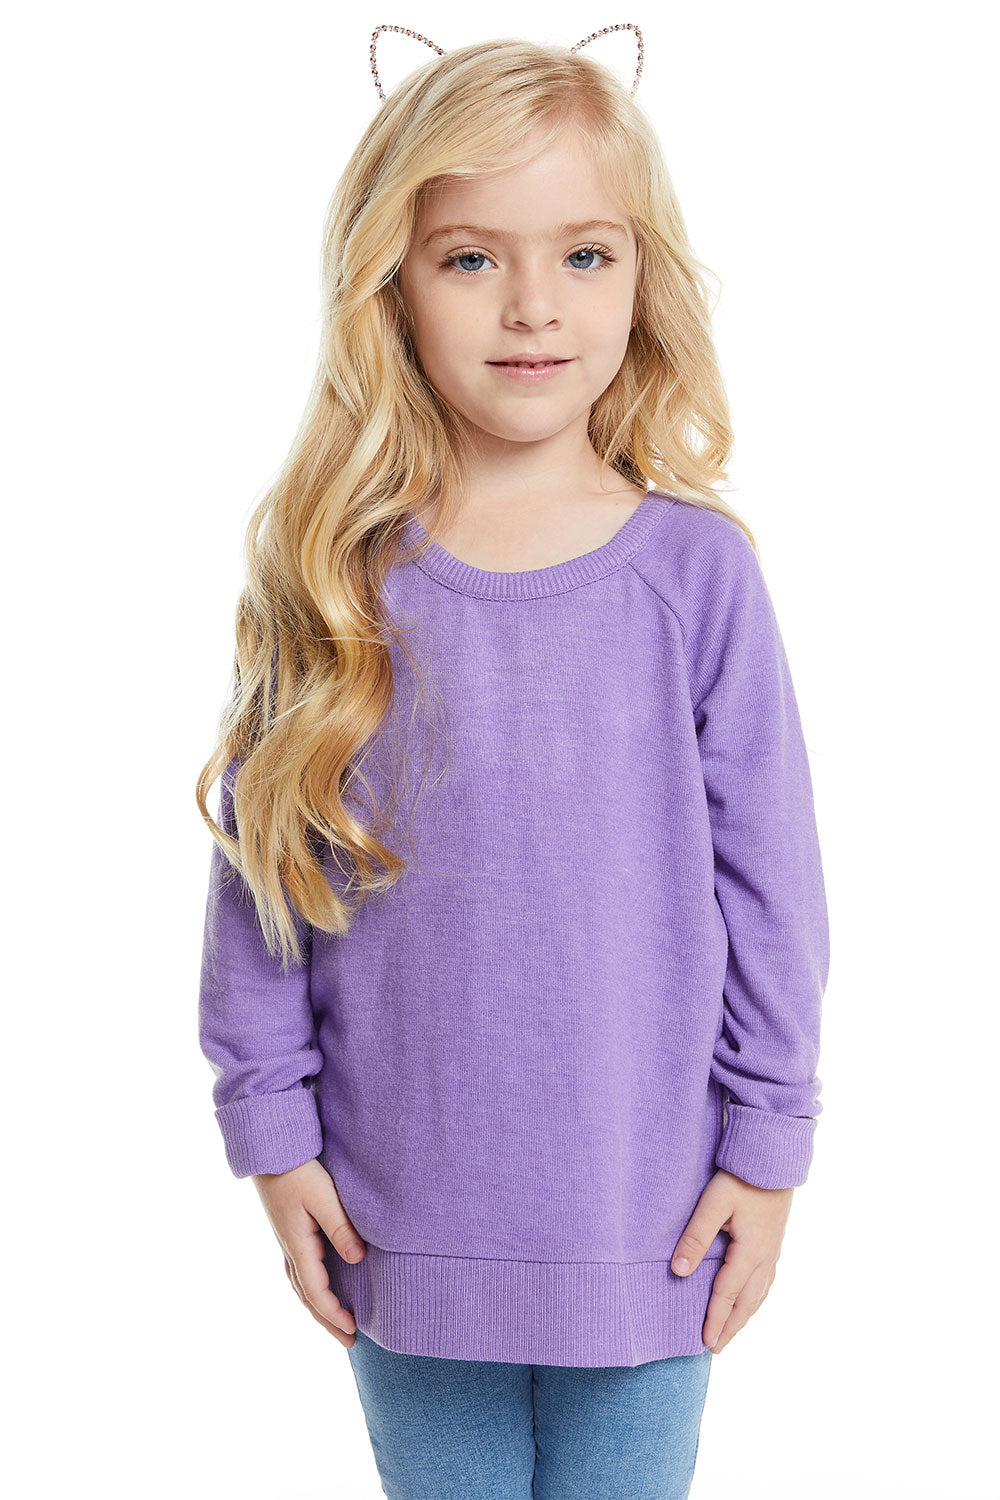 Girls Love Knit Long Sleeve Scoop Back Pullover GIRLS chaserbrand4.myshopify.com